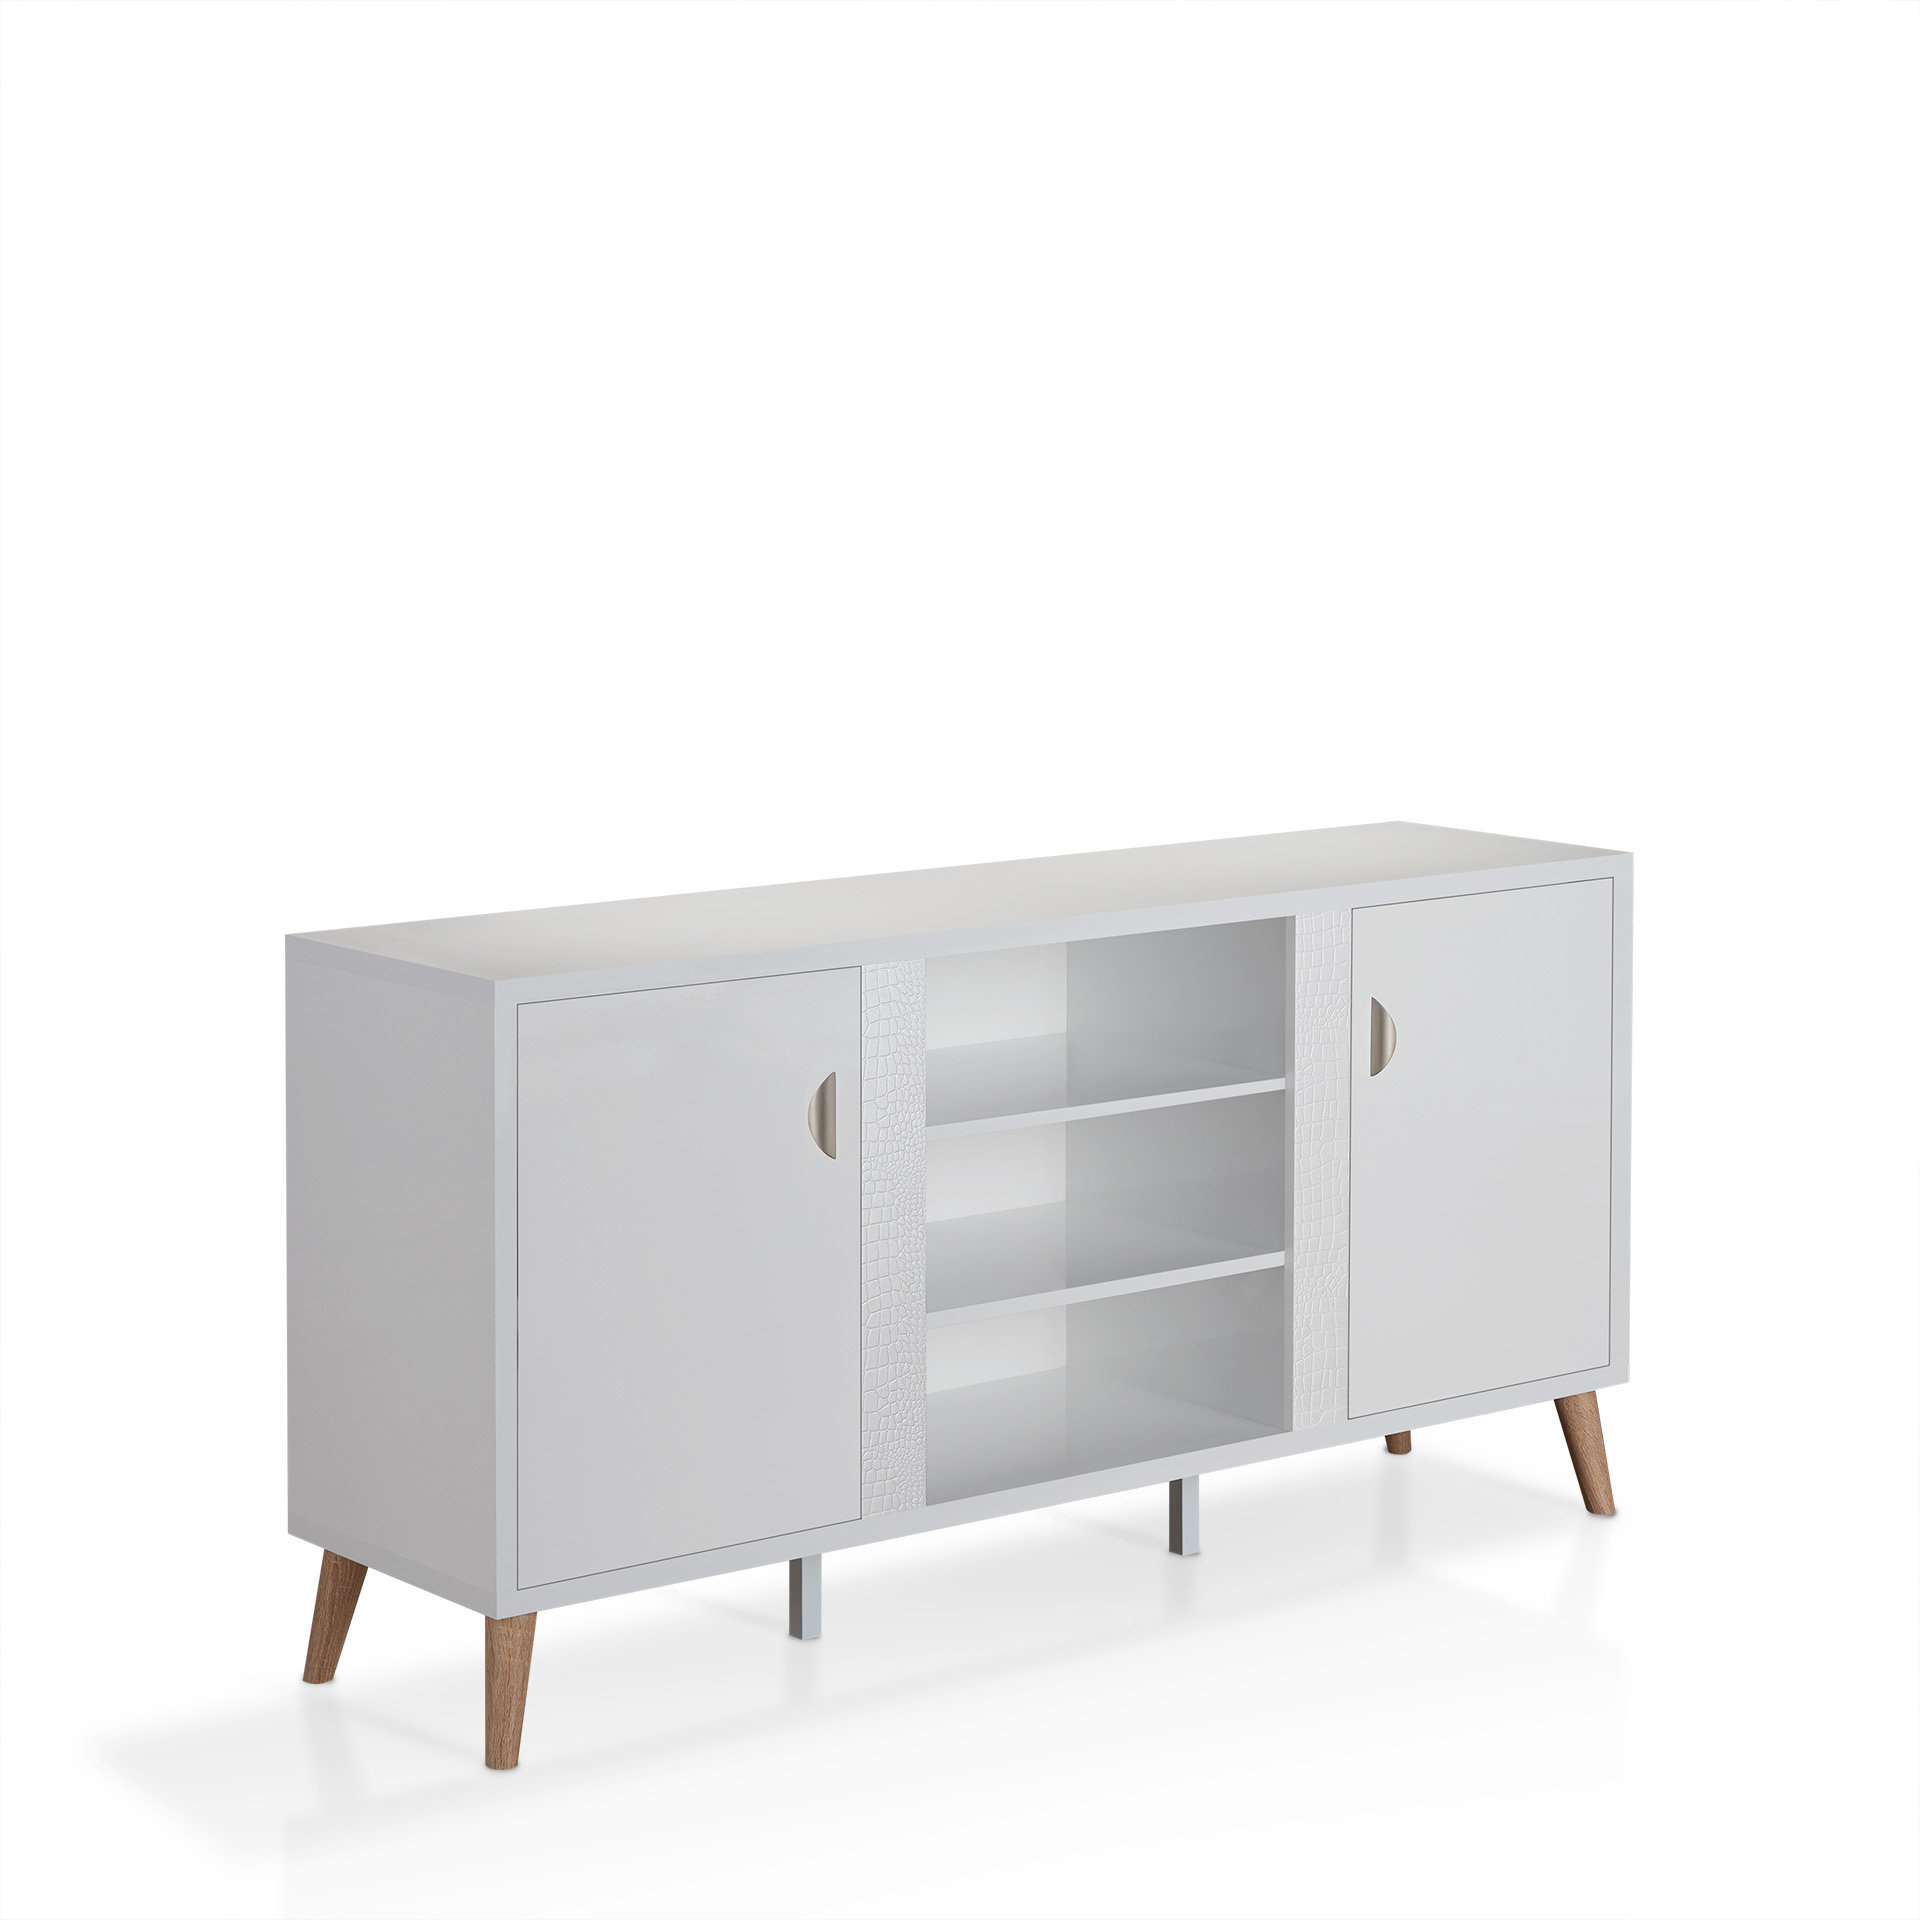 Thaddeus Buffet Table Inside Contemporary Wooden Buffets With Four Open Compartments And Metal Tapered Legs (View 20 of 20)